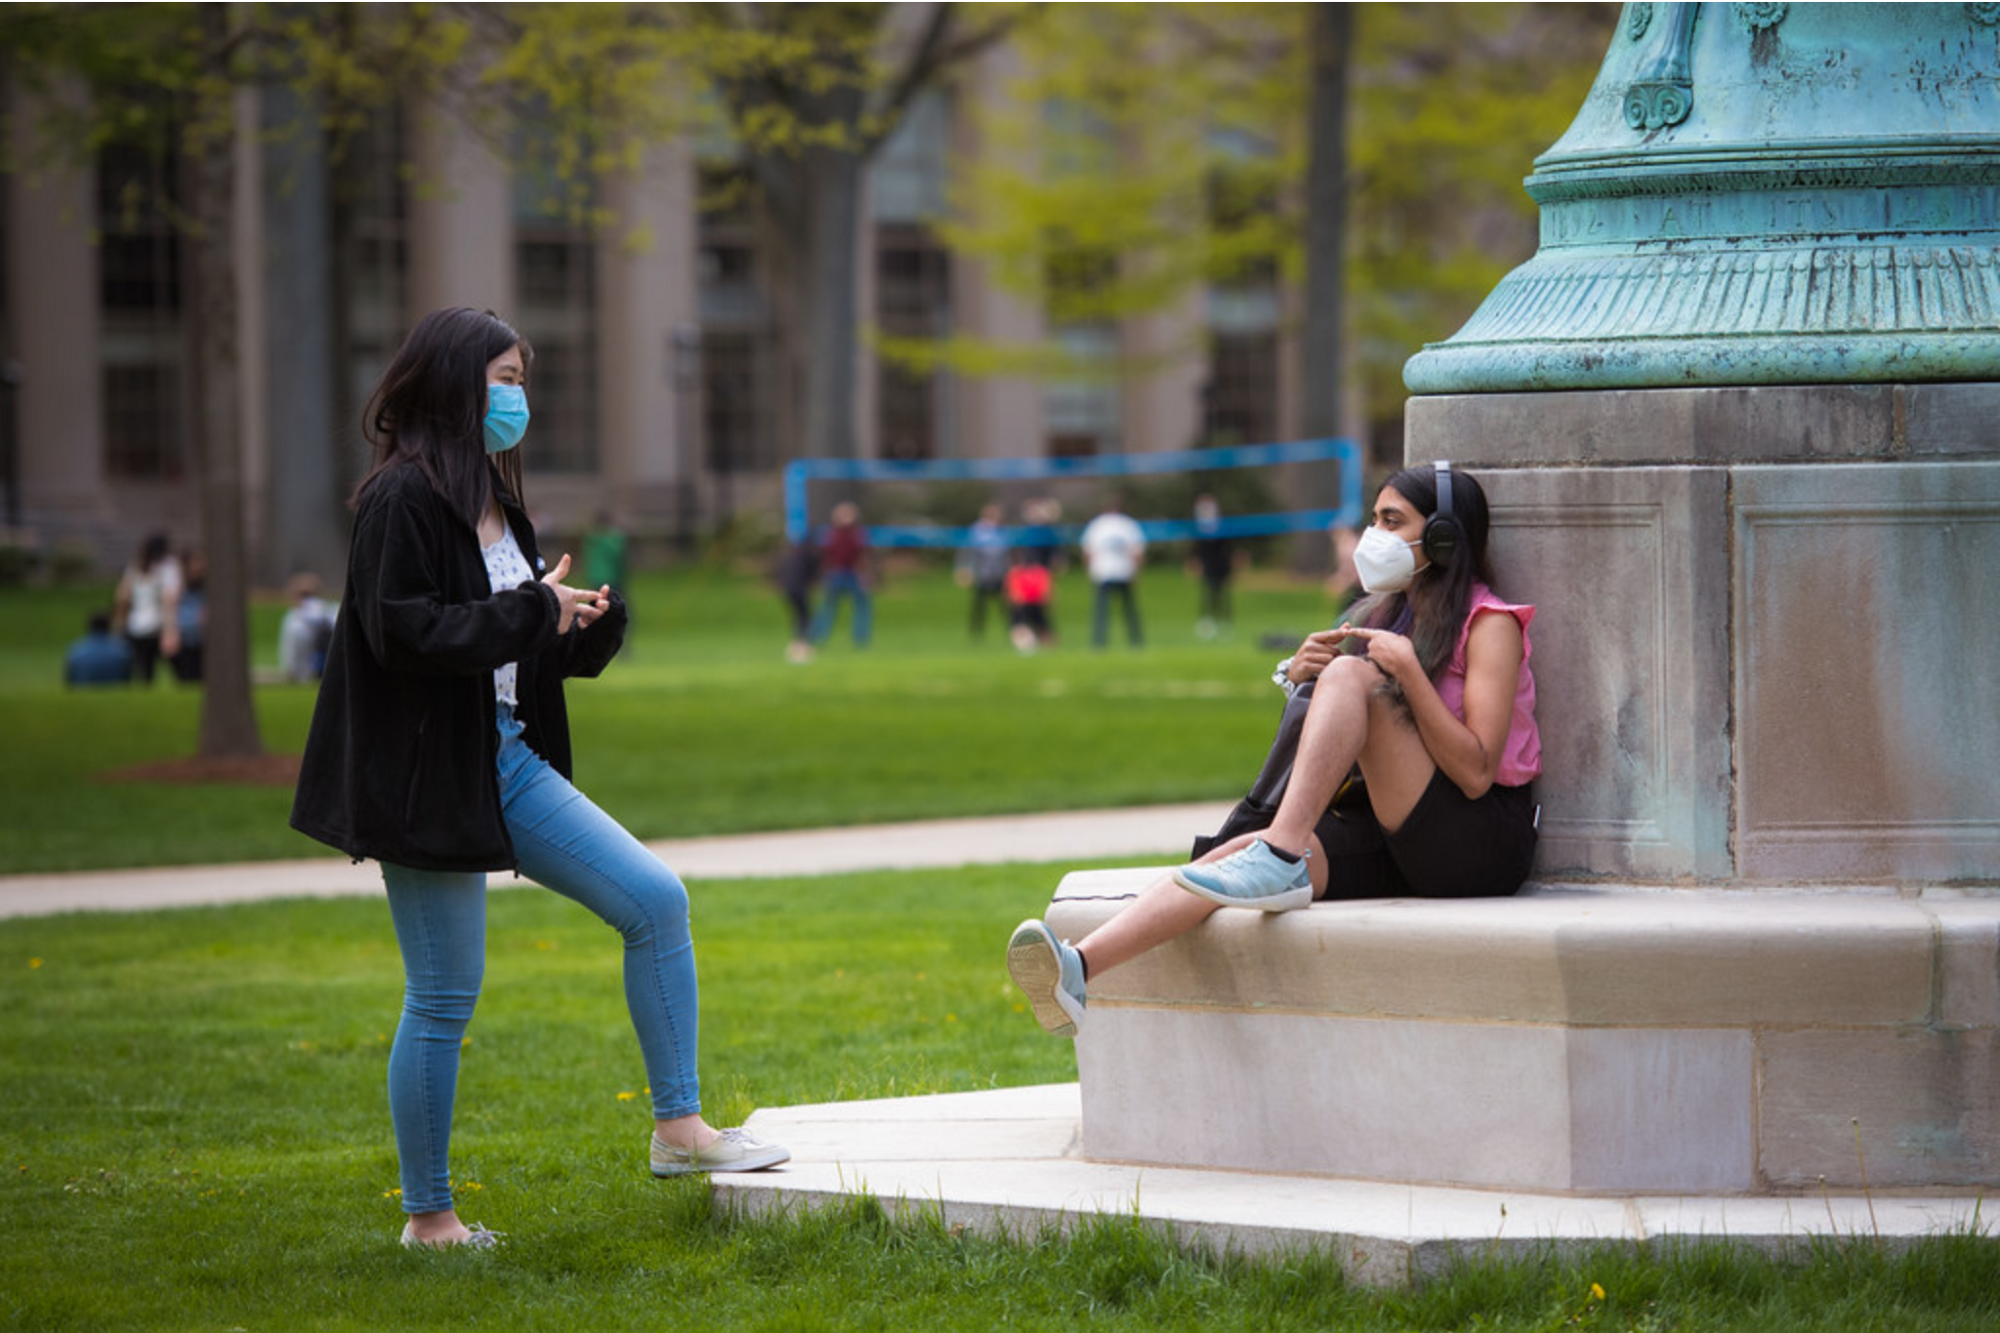 Two students wearing masks talk to each other on MIT campus. One is standing and one is sitting.